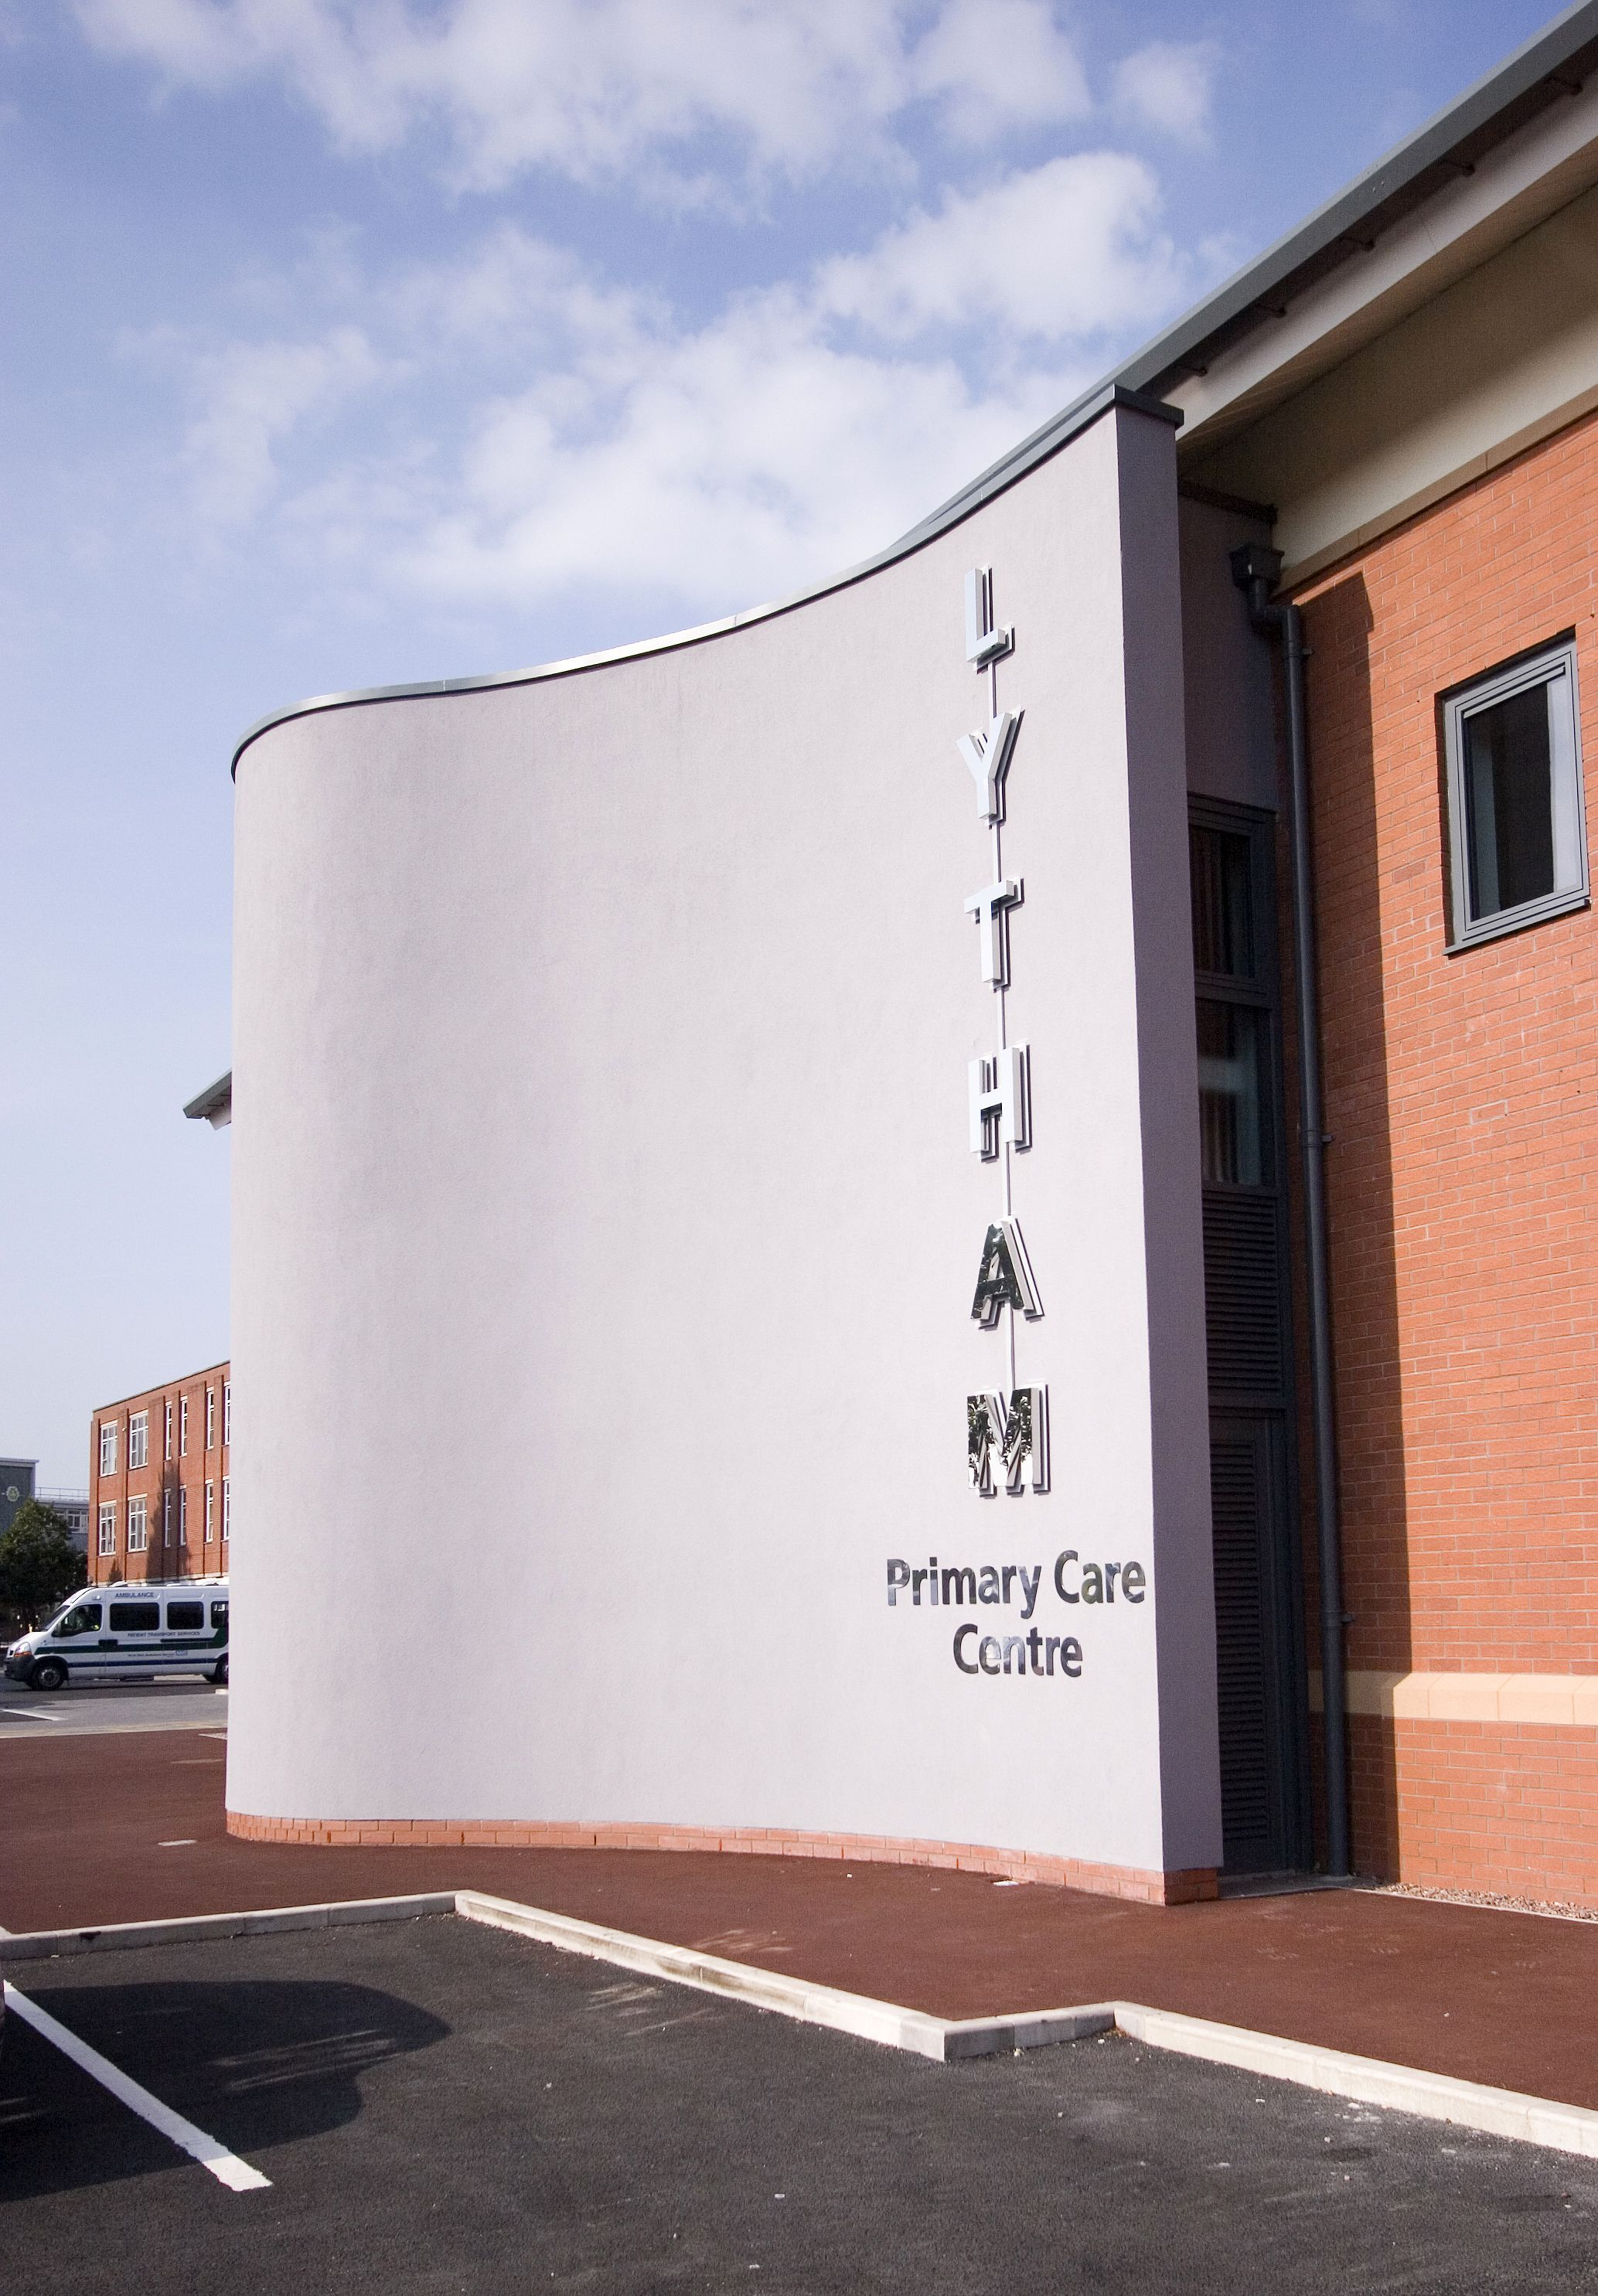 Pin by Guttermaster Limited on Lytham Primary Care Centre